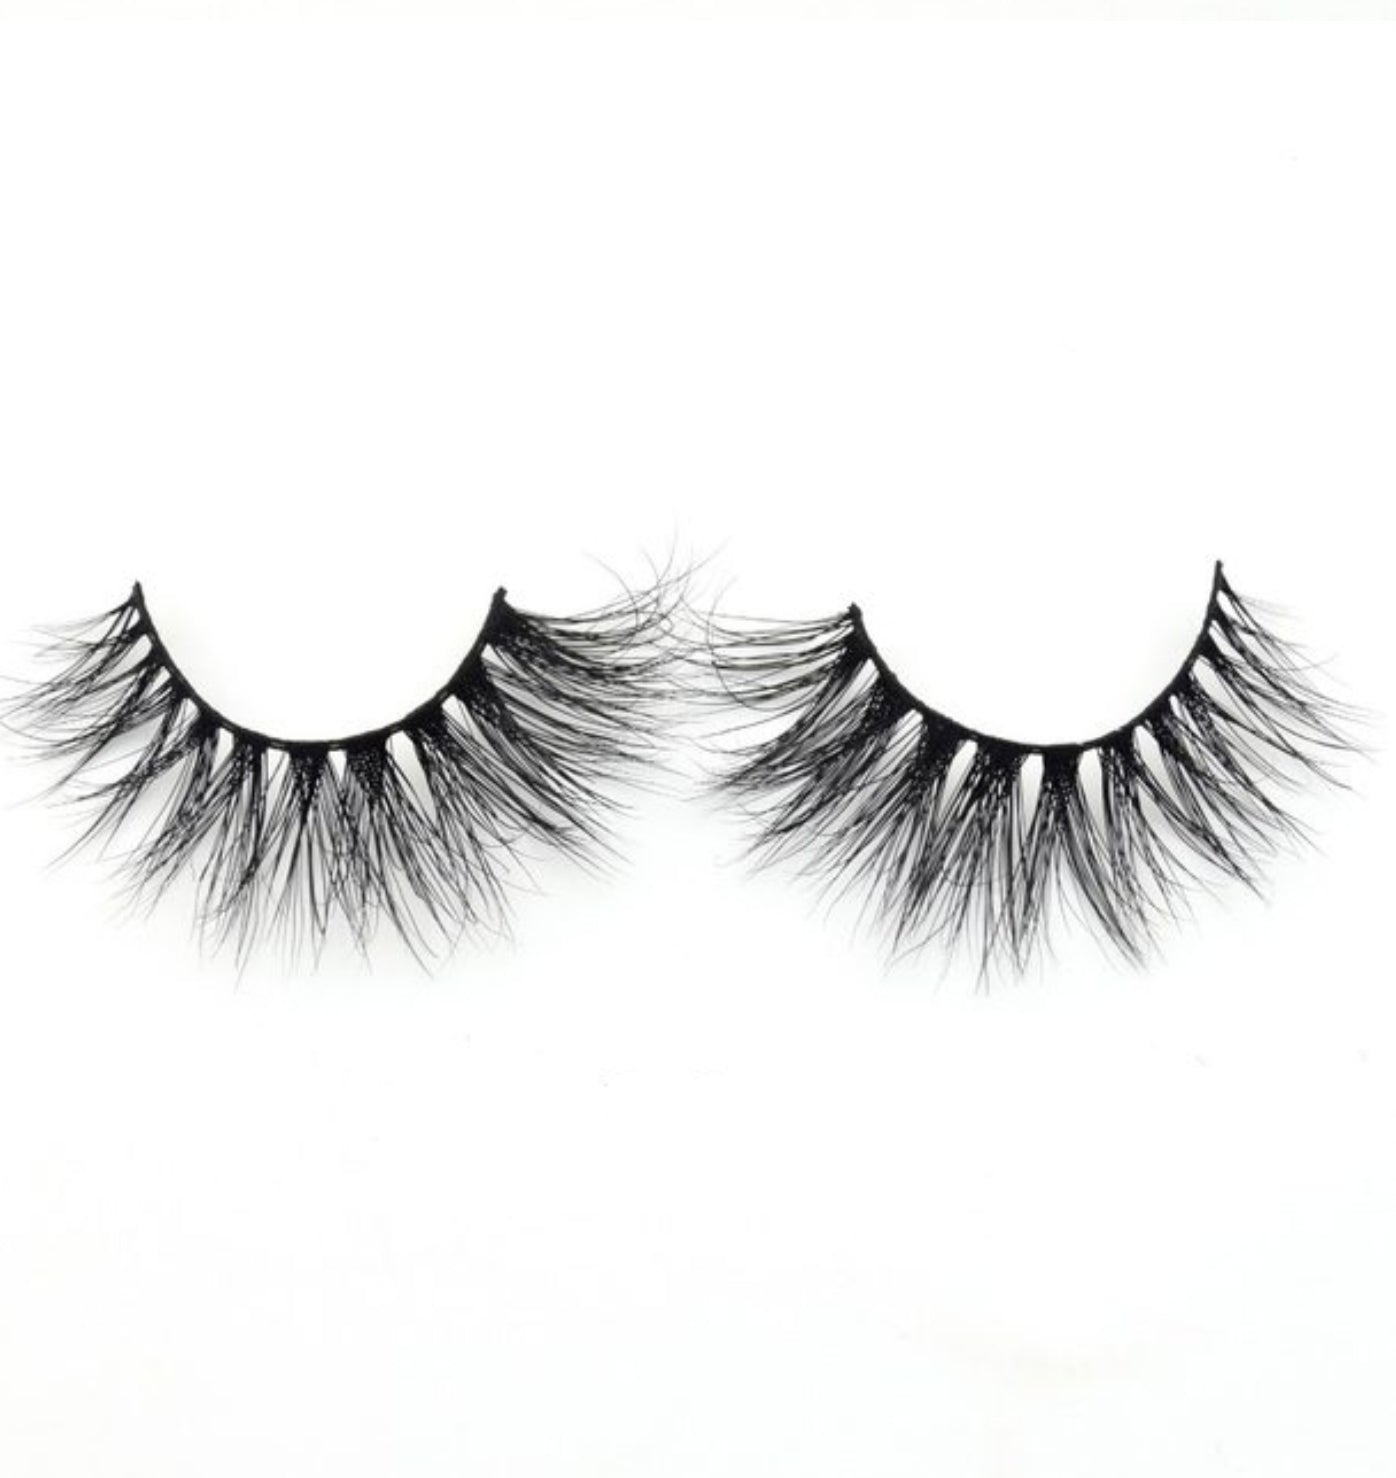 Hot Girl - 3D Lashes - Kay Nicole Cosmetics